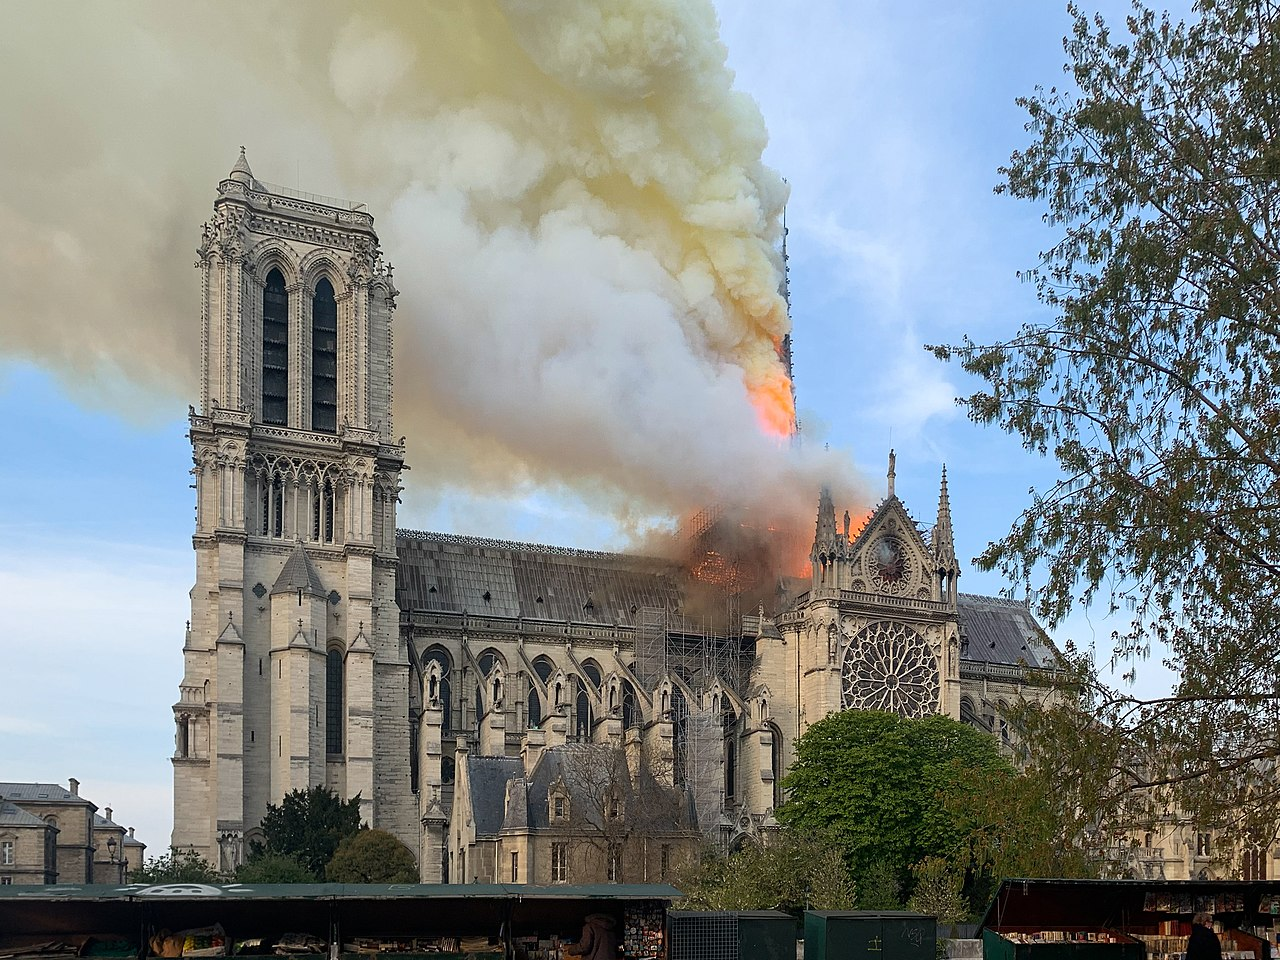 Notre Dame on fire. (Source: Wandrille de Préville on Wikimedia Commons, CC-BY-SA-4.0)